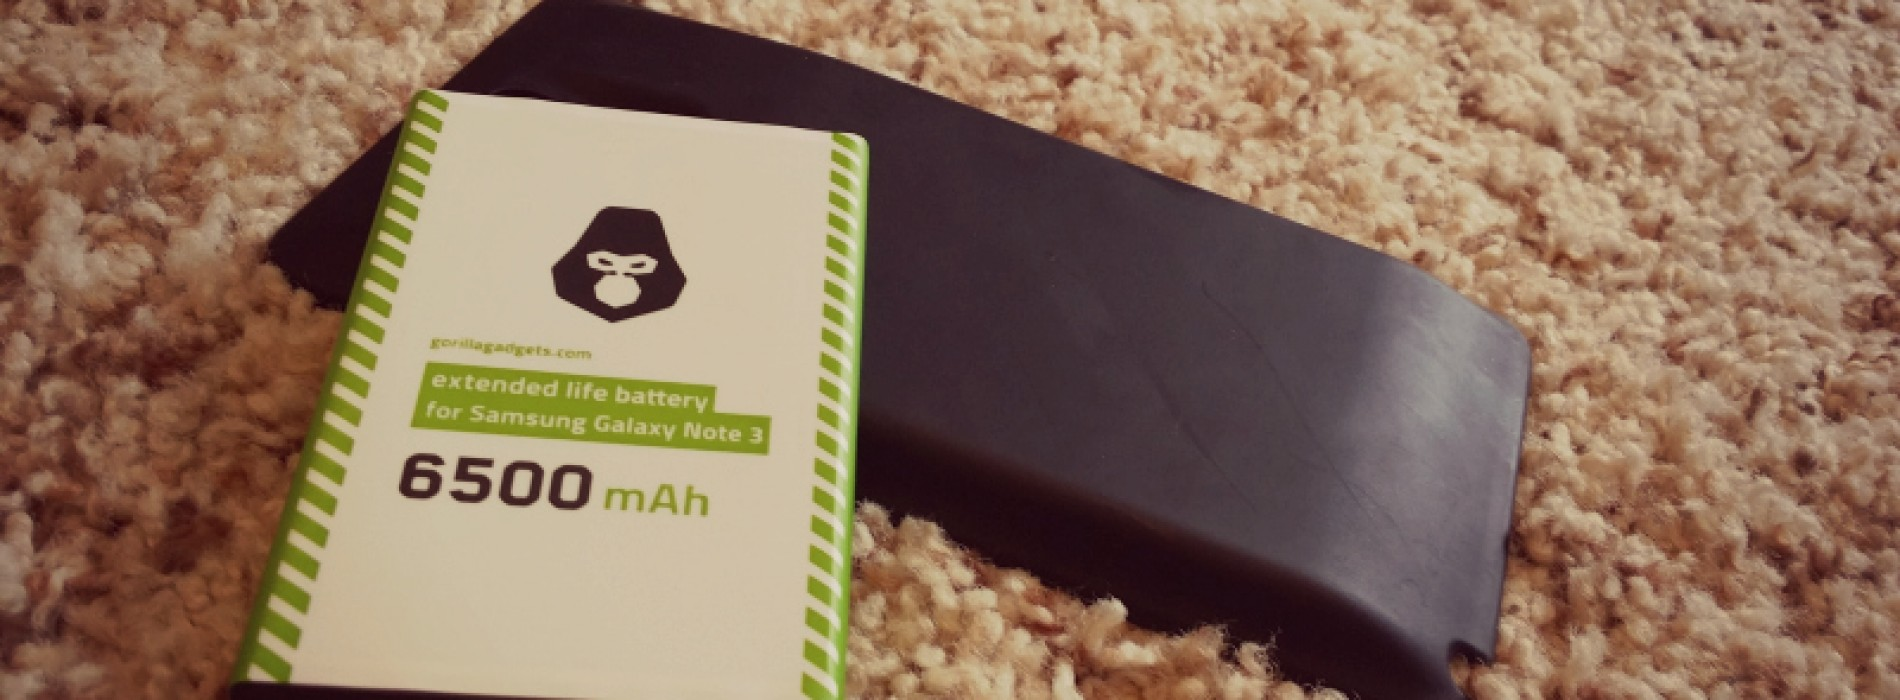 Gorilla Gadgets extended life battery (6500mAh) for Galaxy Note 3 review